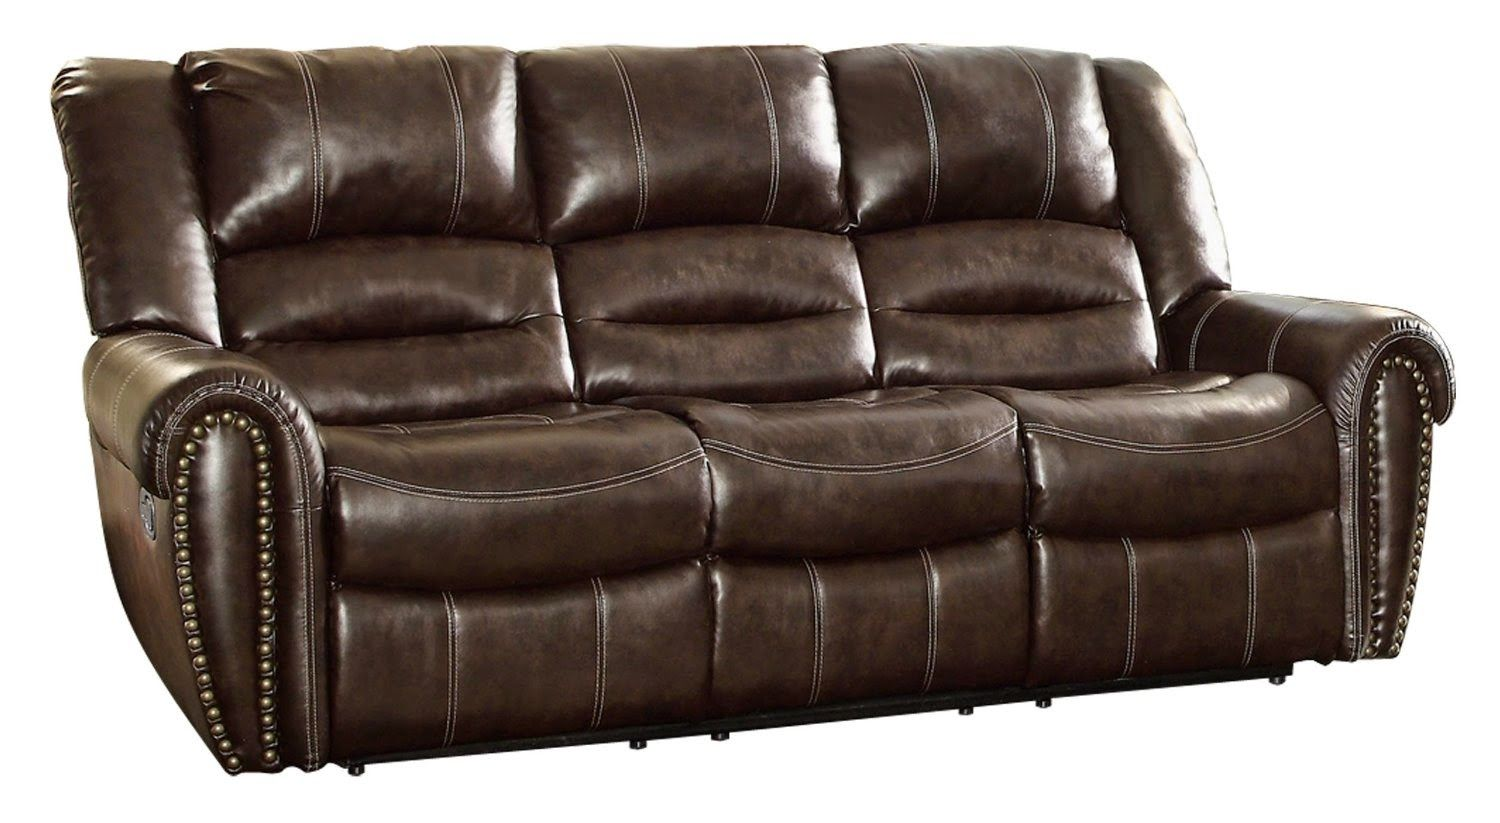 87 Reference Of Double Reclining Sofa Reviews In 2020 Reclining Sofa Best Leather Sofa Recliner Couch